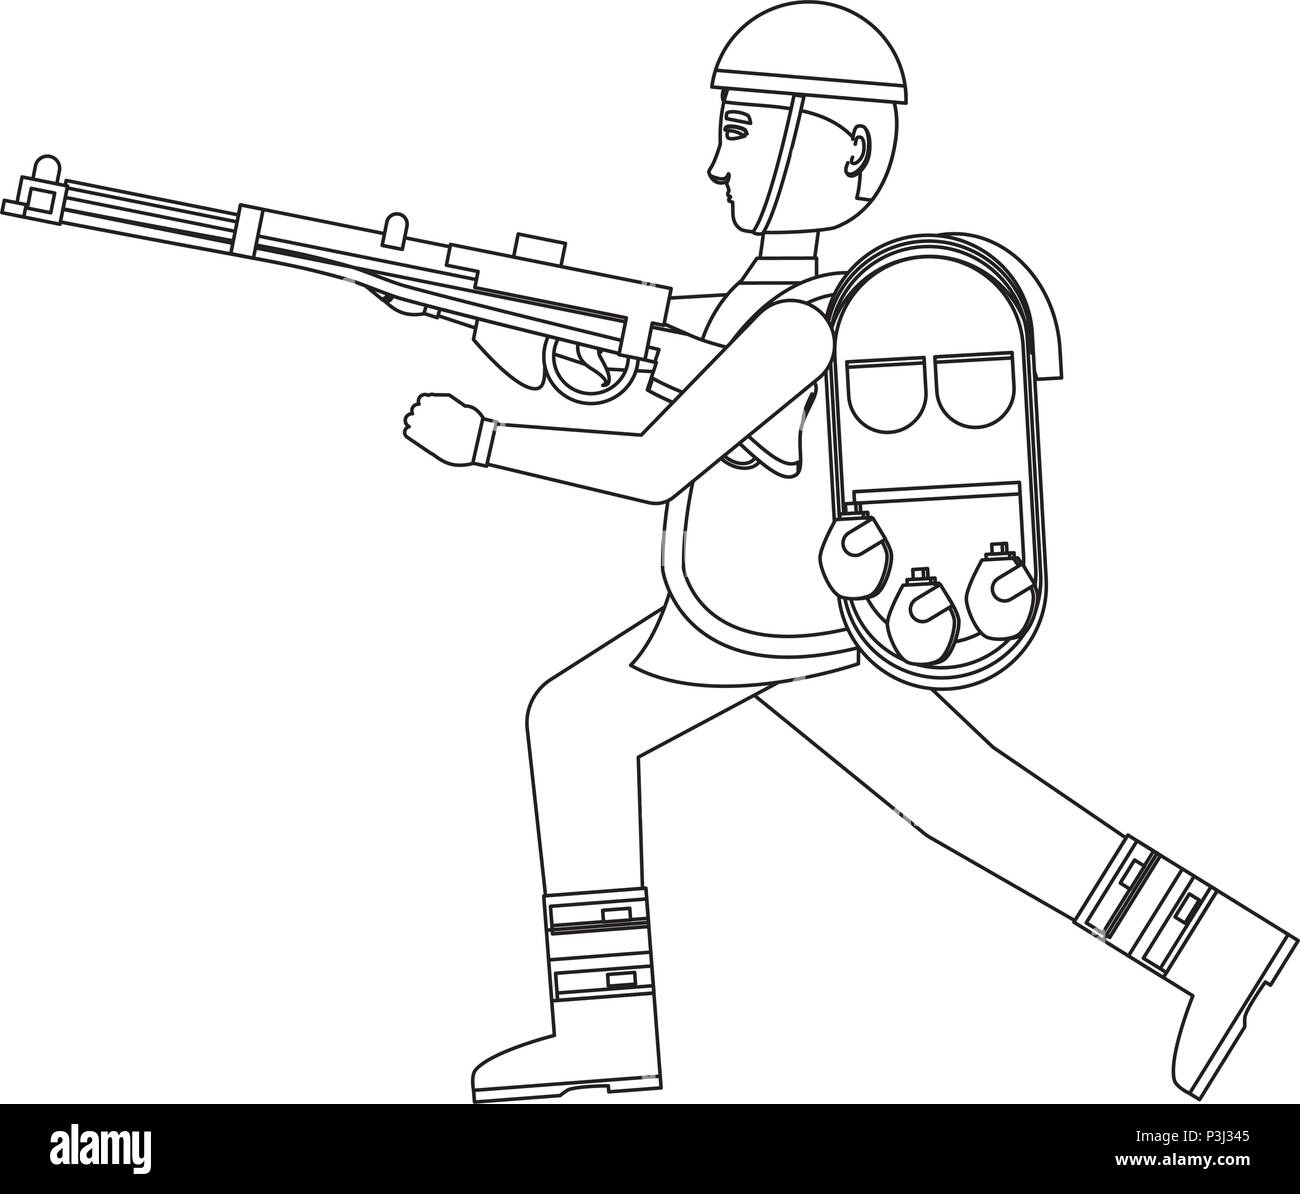 Anzac soldier with the equipment and weapon over white background, vector illustration - Stock Image